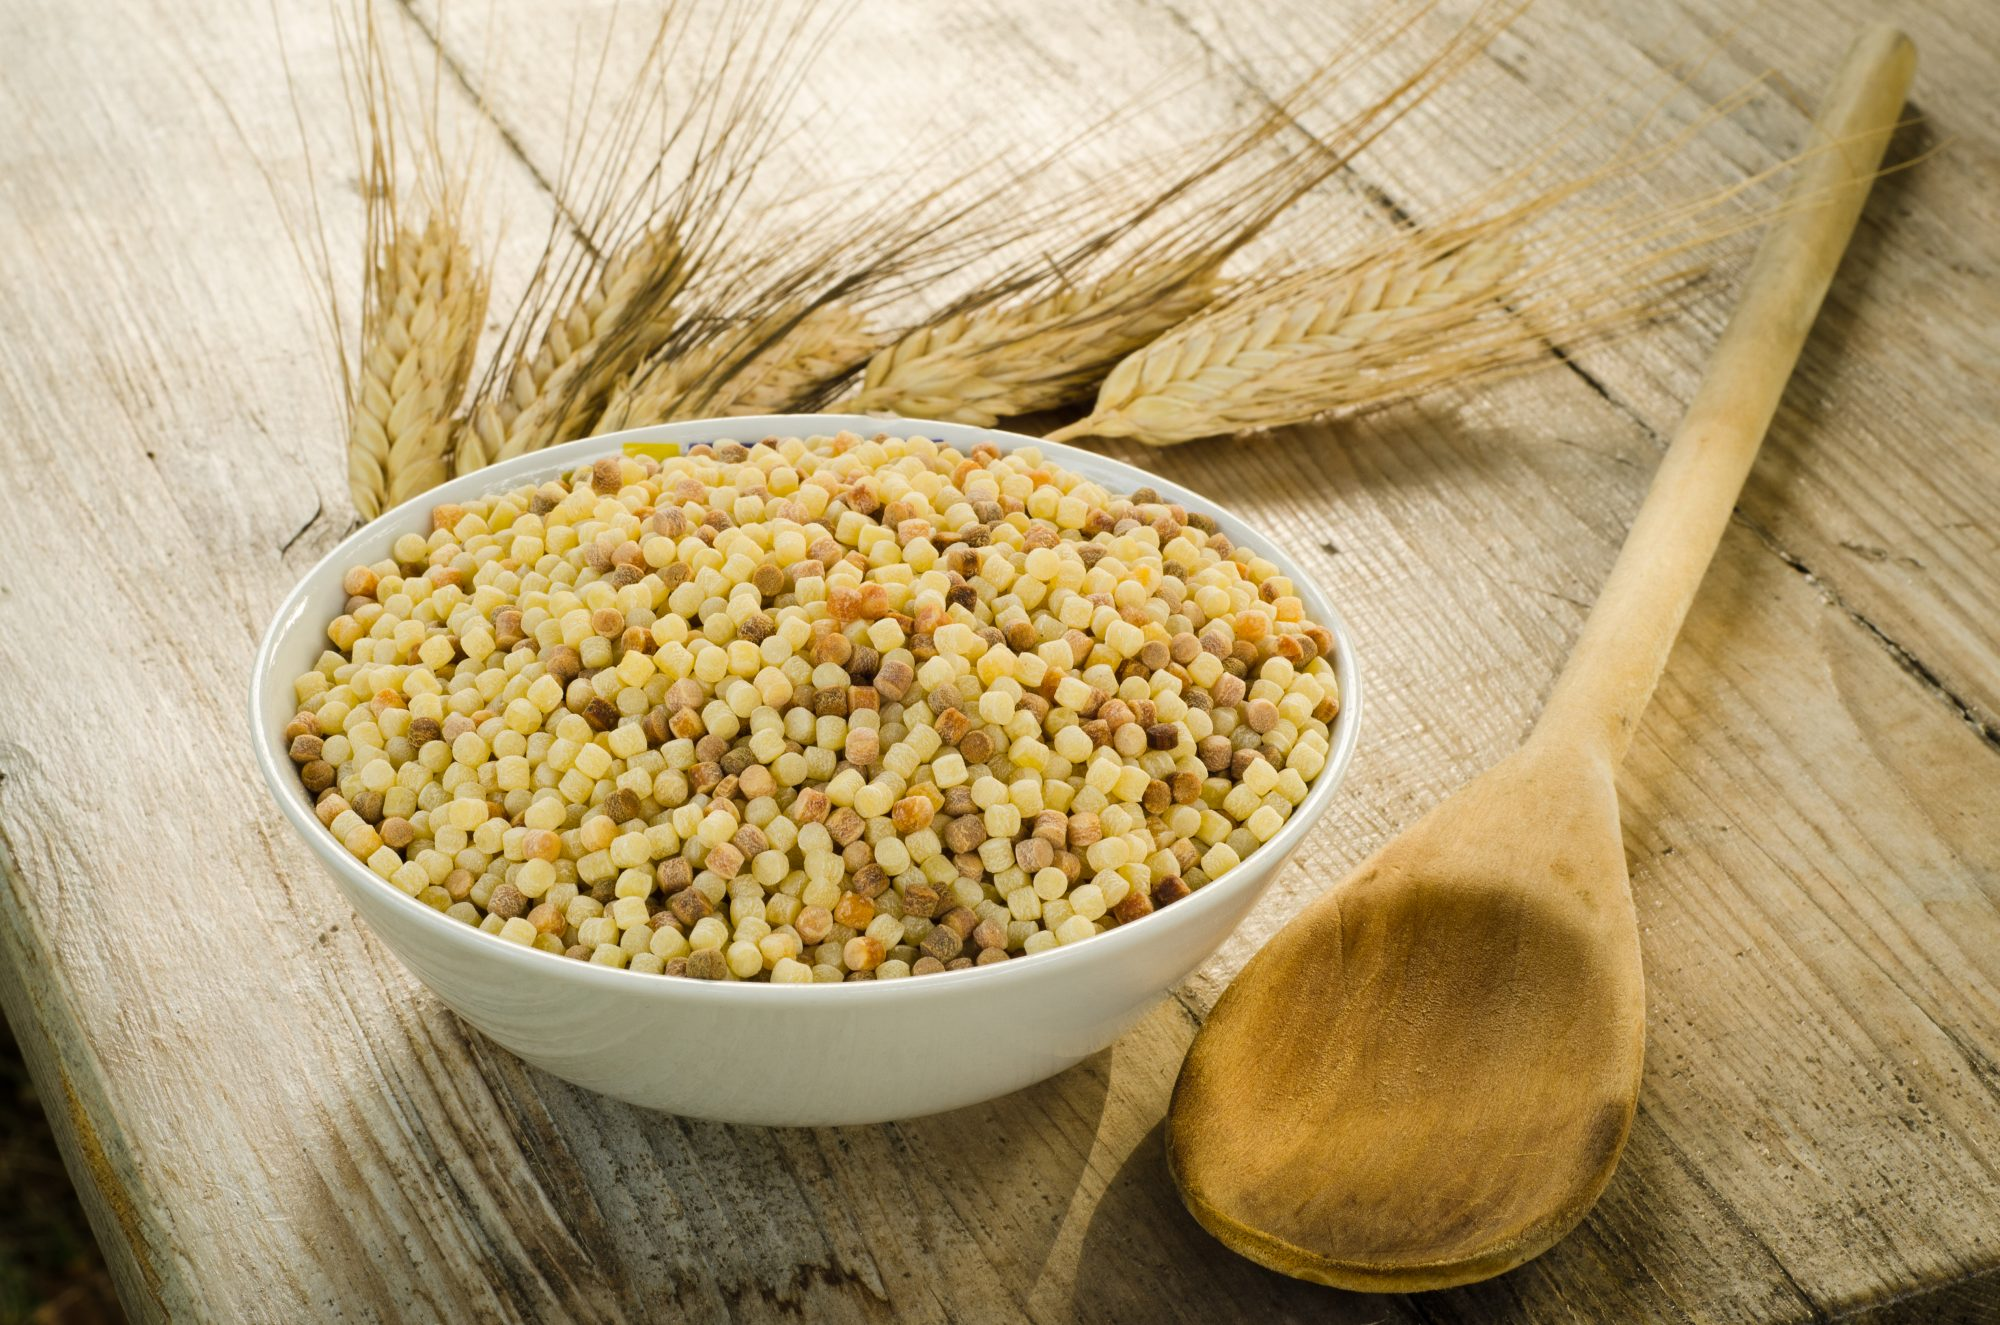 032620_Getty Fregola-148949893.jpg